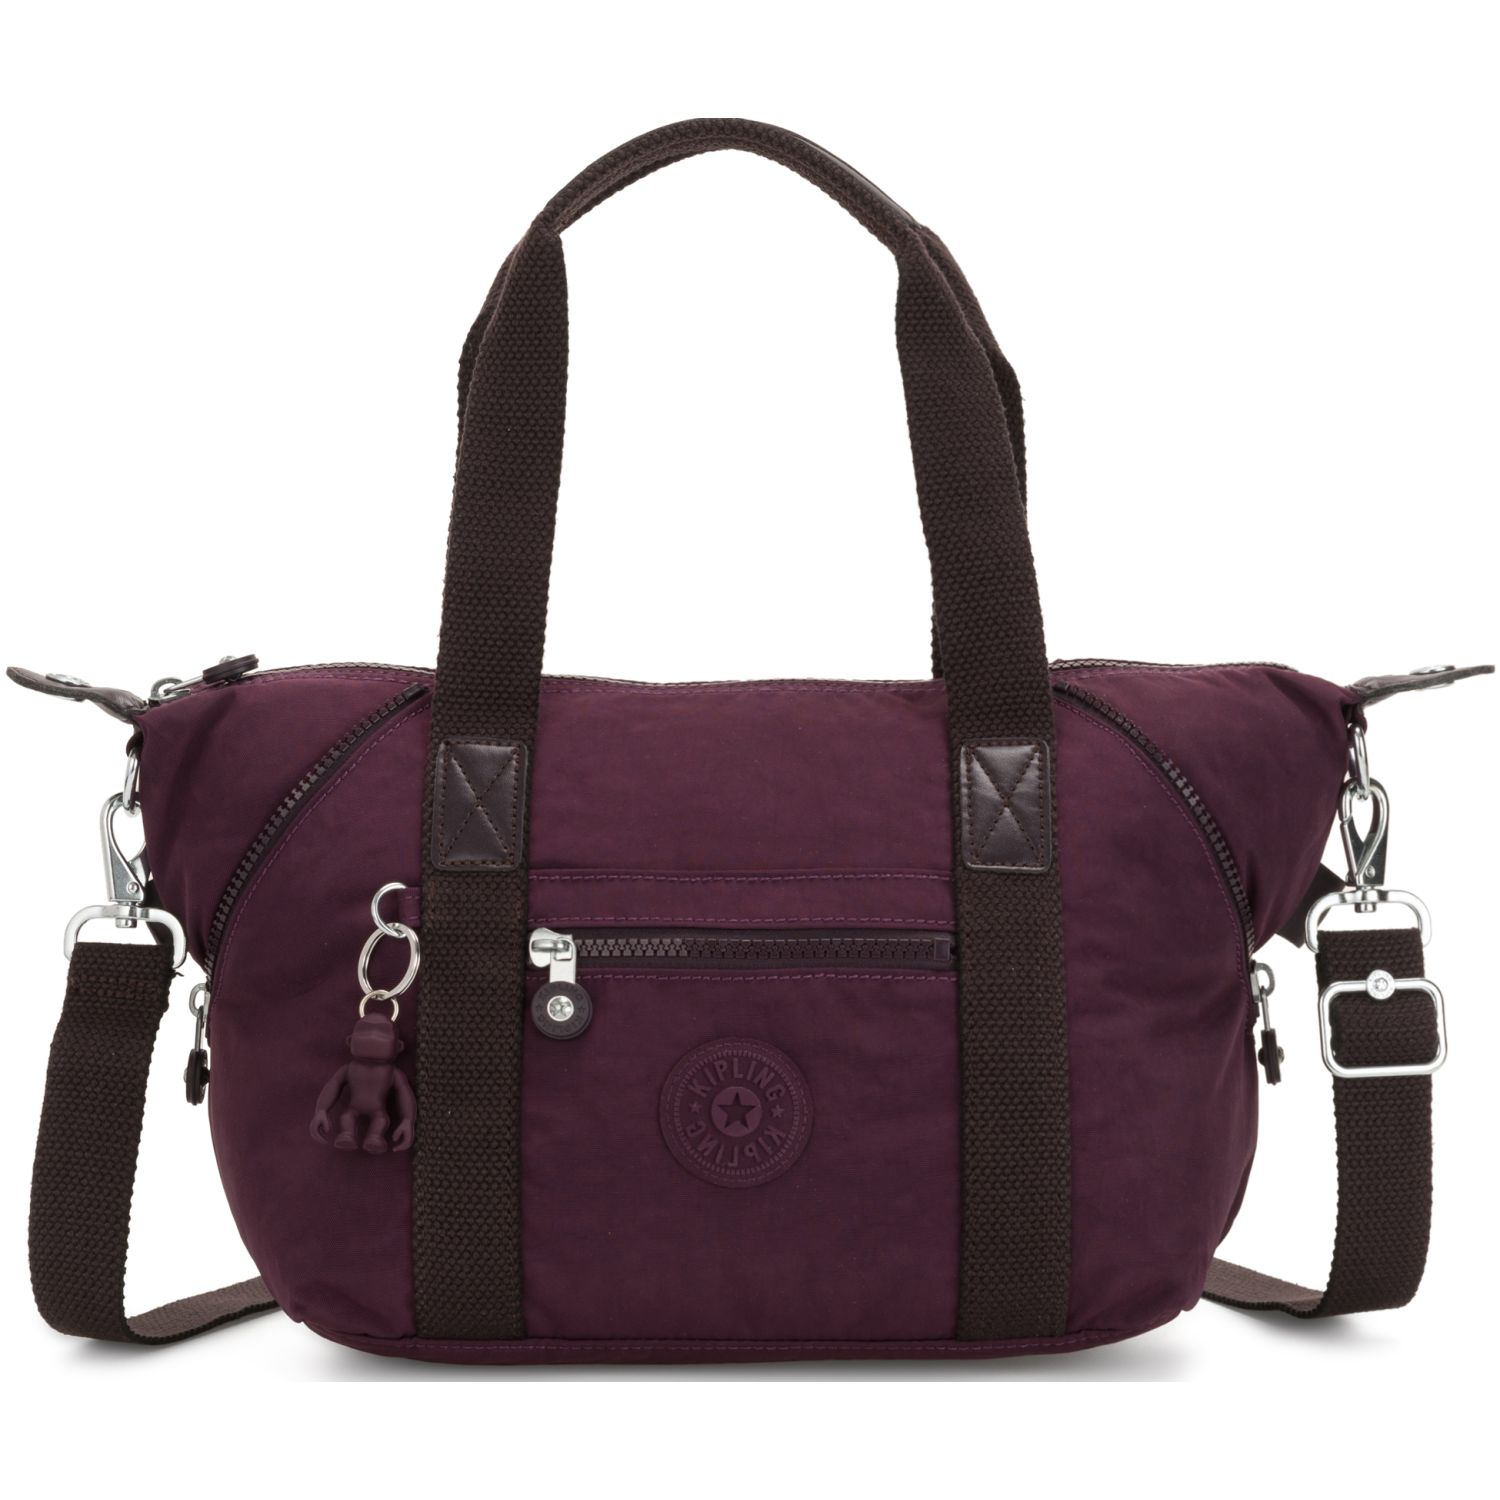 Kipling Cartera Art Mini Morado Carteras con Asa